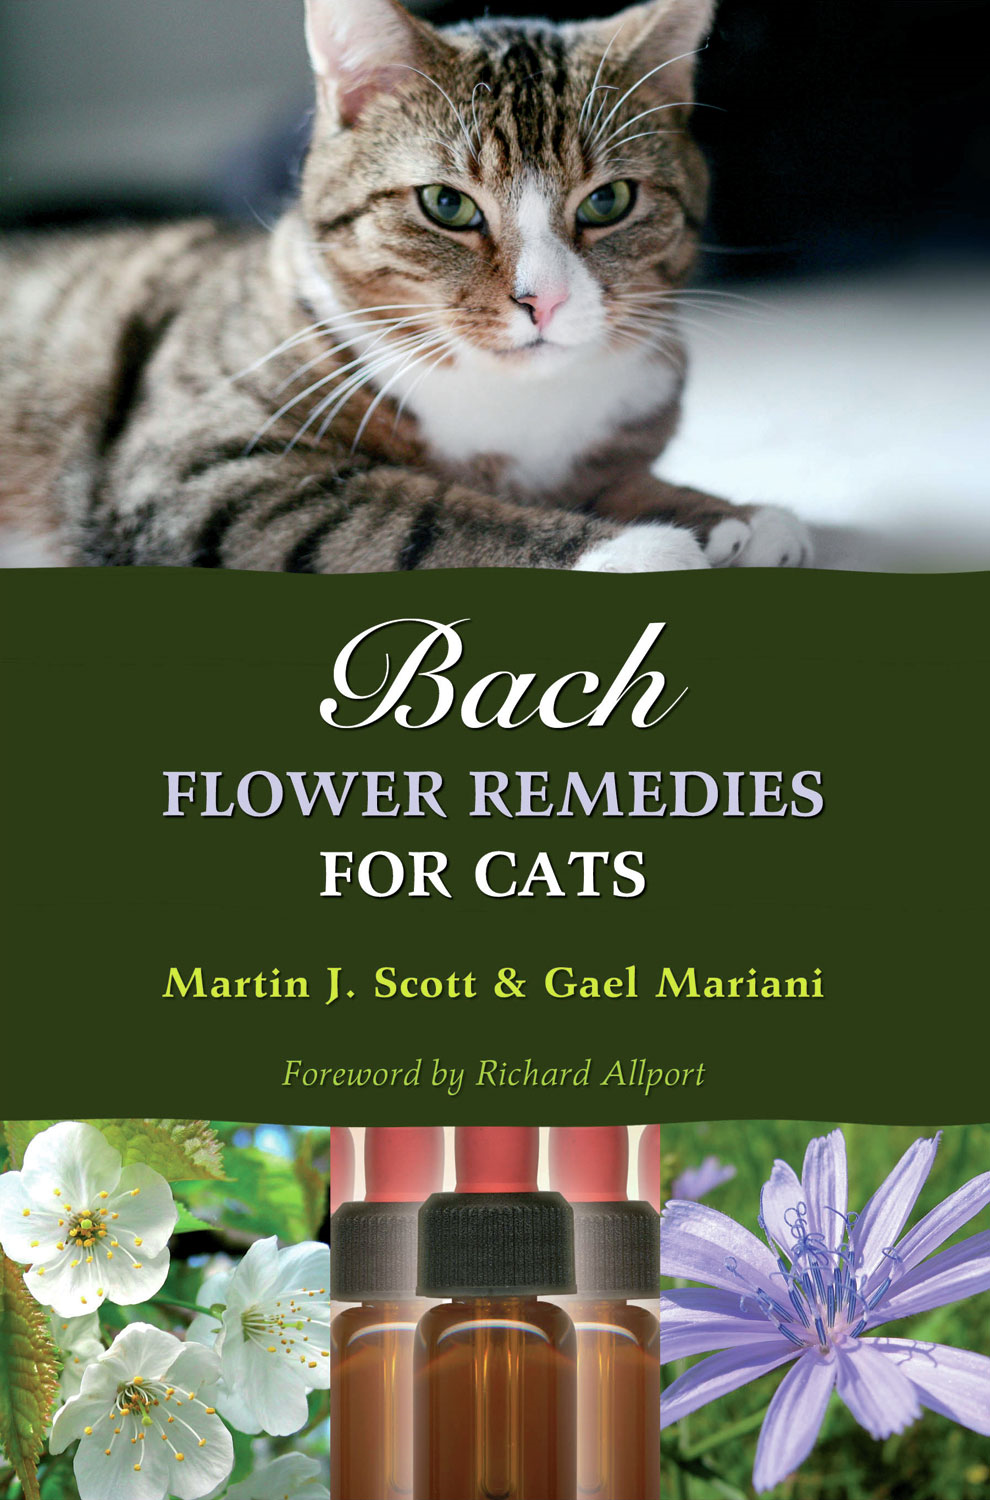 Bach Flower Remedies for Cats By: Gael Mariani,Martin J. Scott